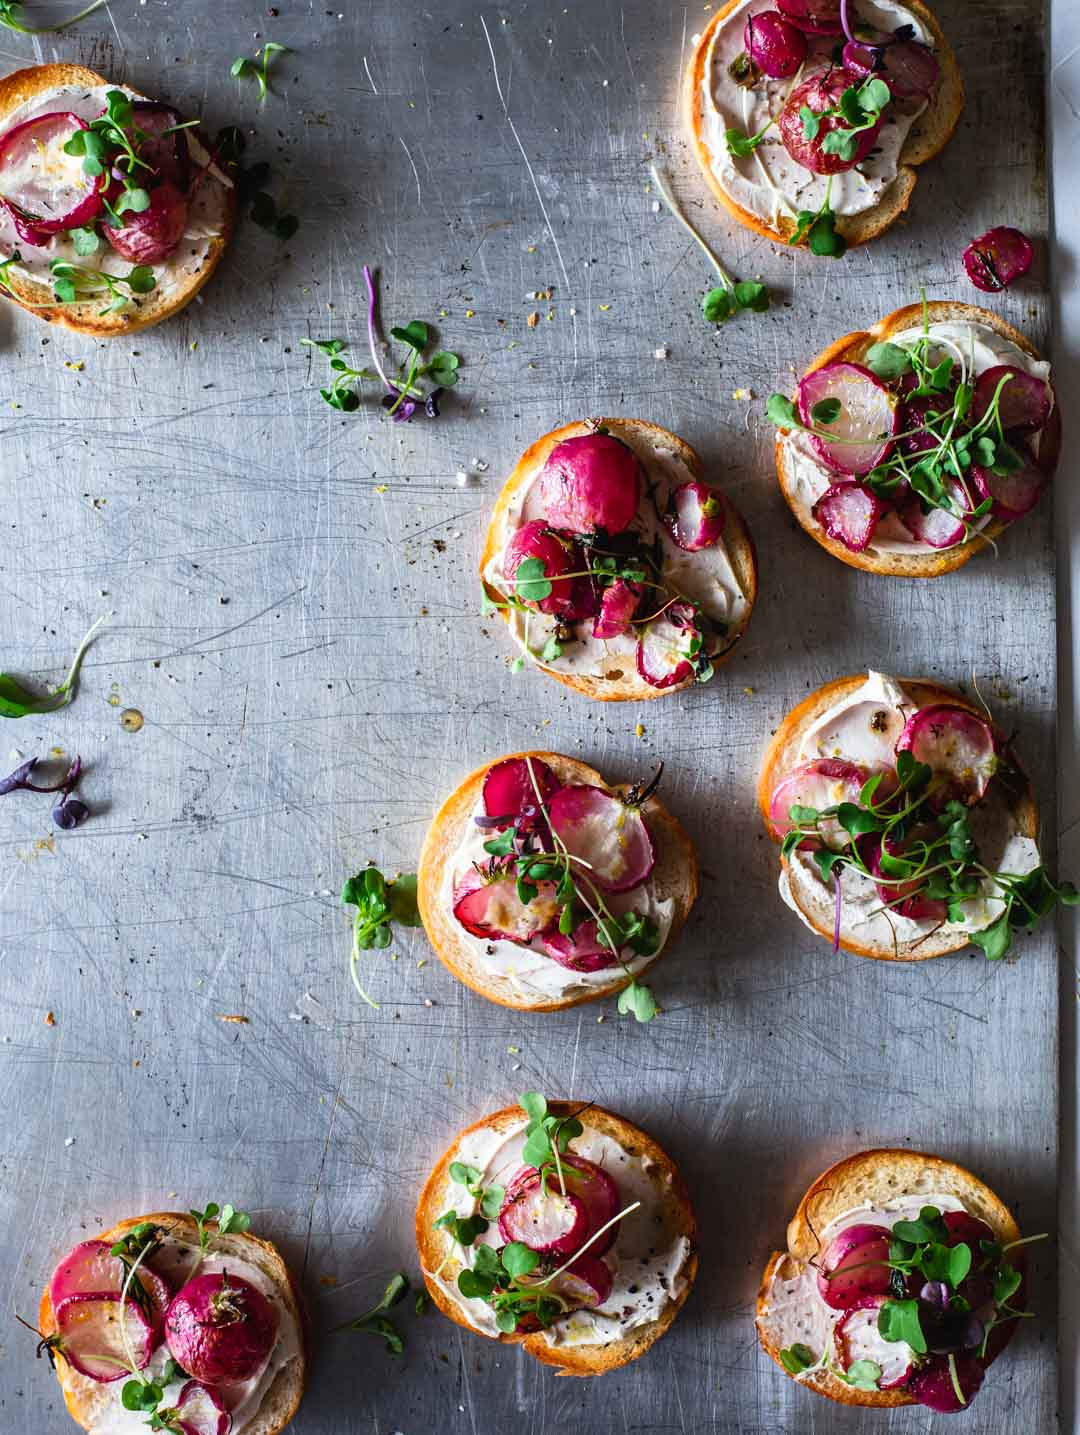 An overhead image of bagels with cream cheese and roasted radish